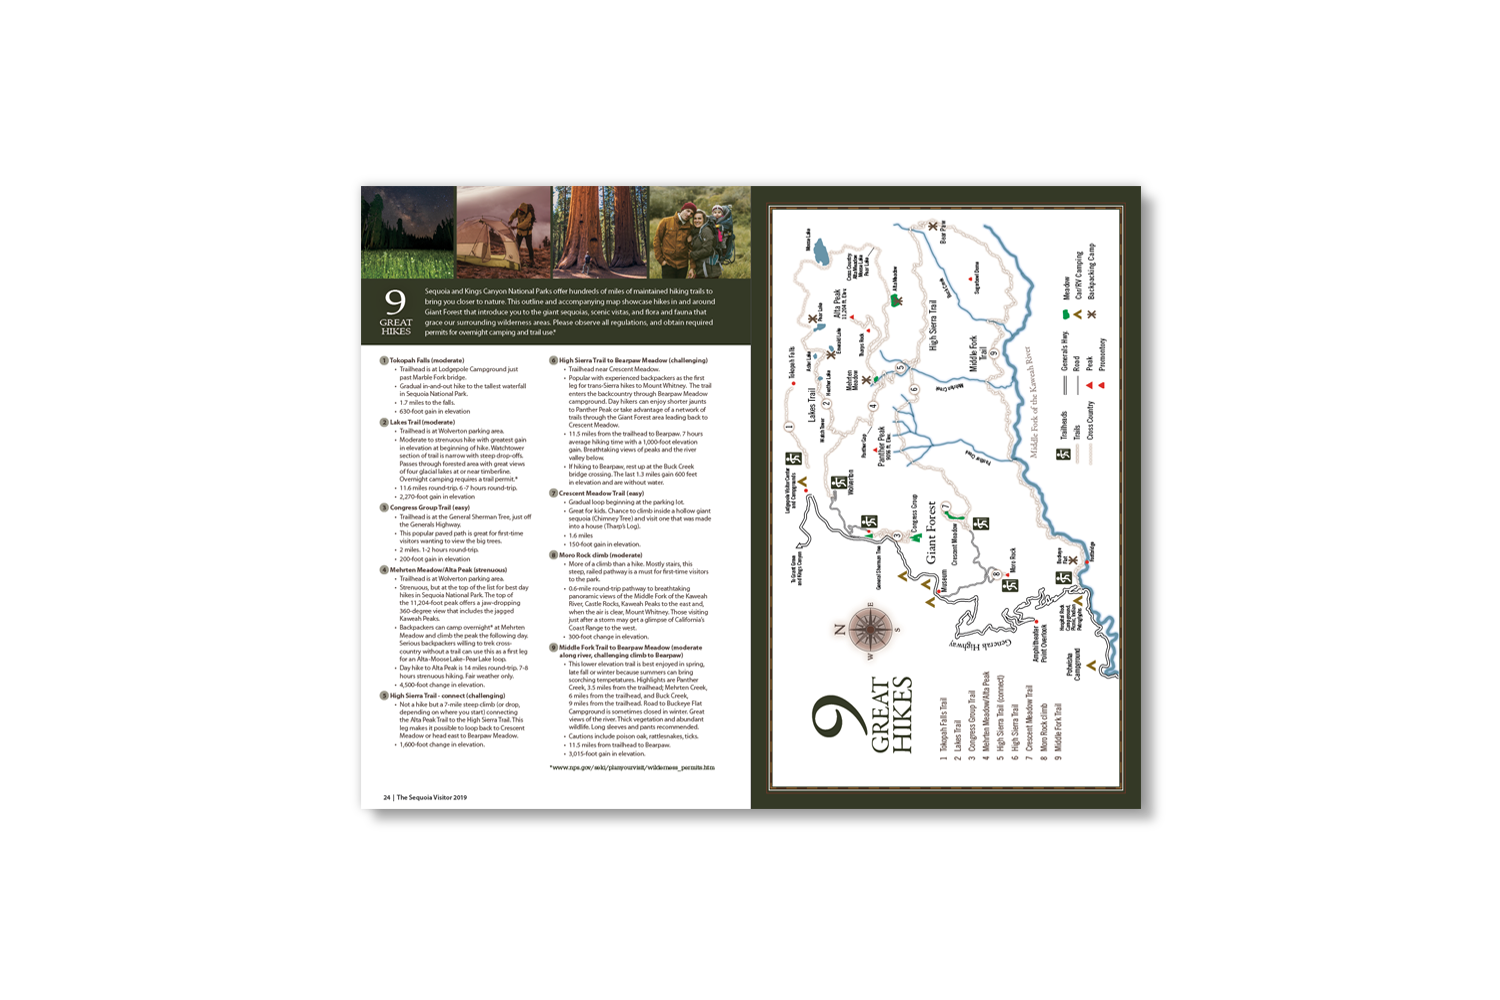 Sequoia Visitors Guide_9 great hikes, created by DMI Agency